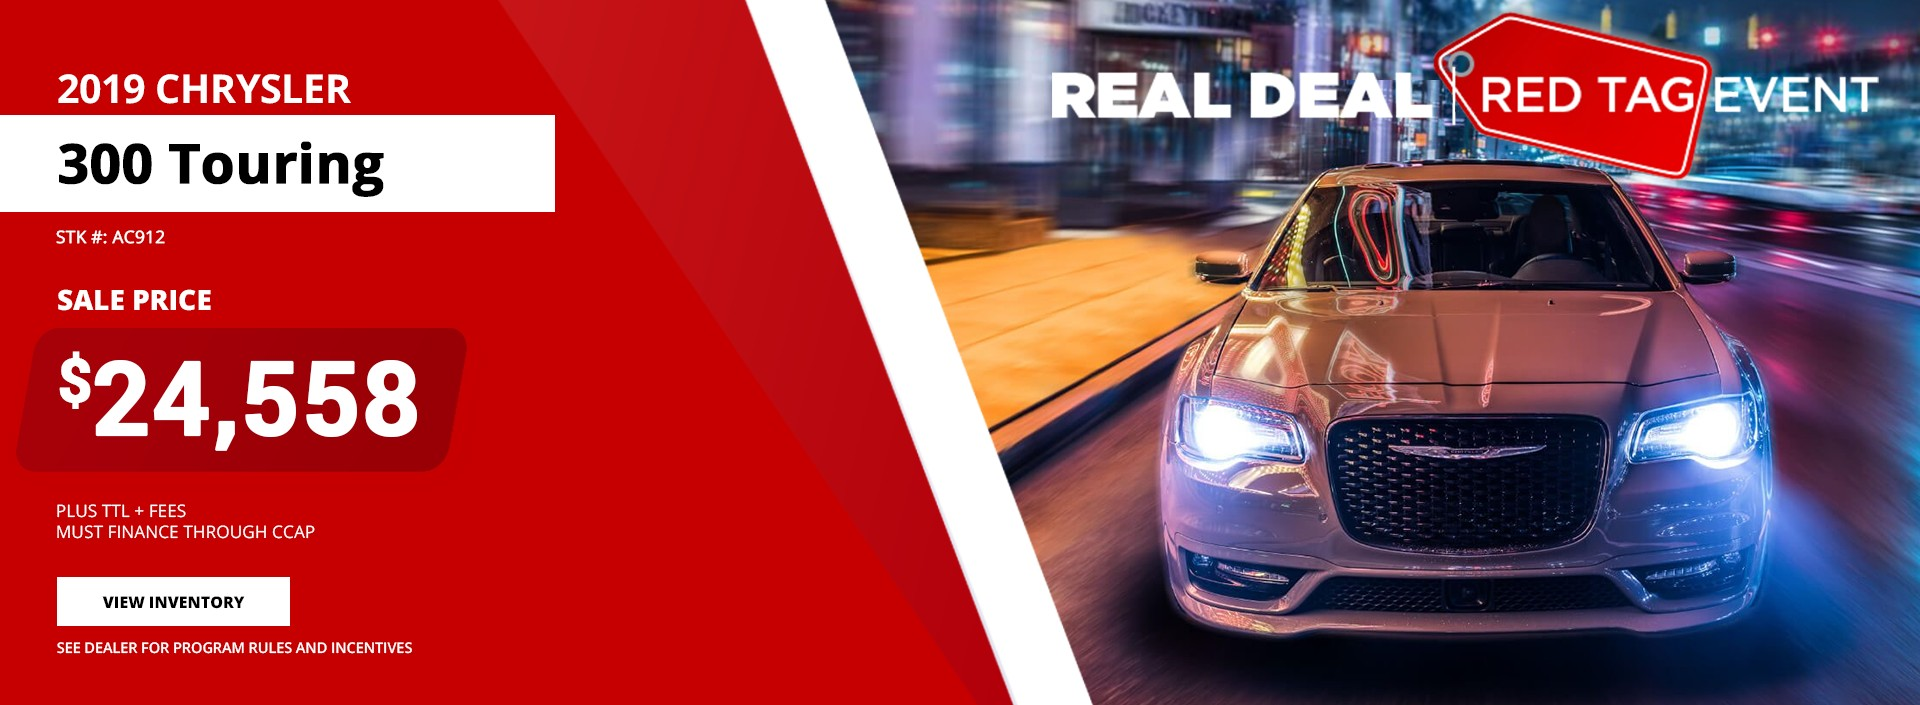 2019 Chrysler 300 Touring - Red Tag Event